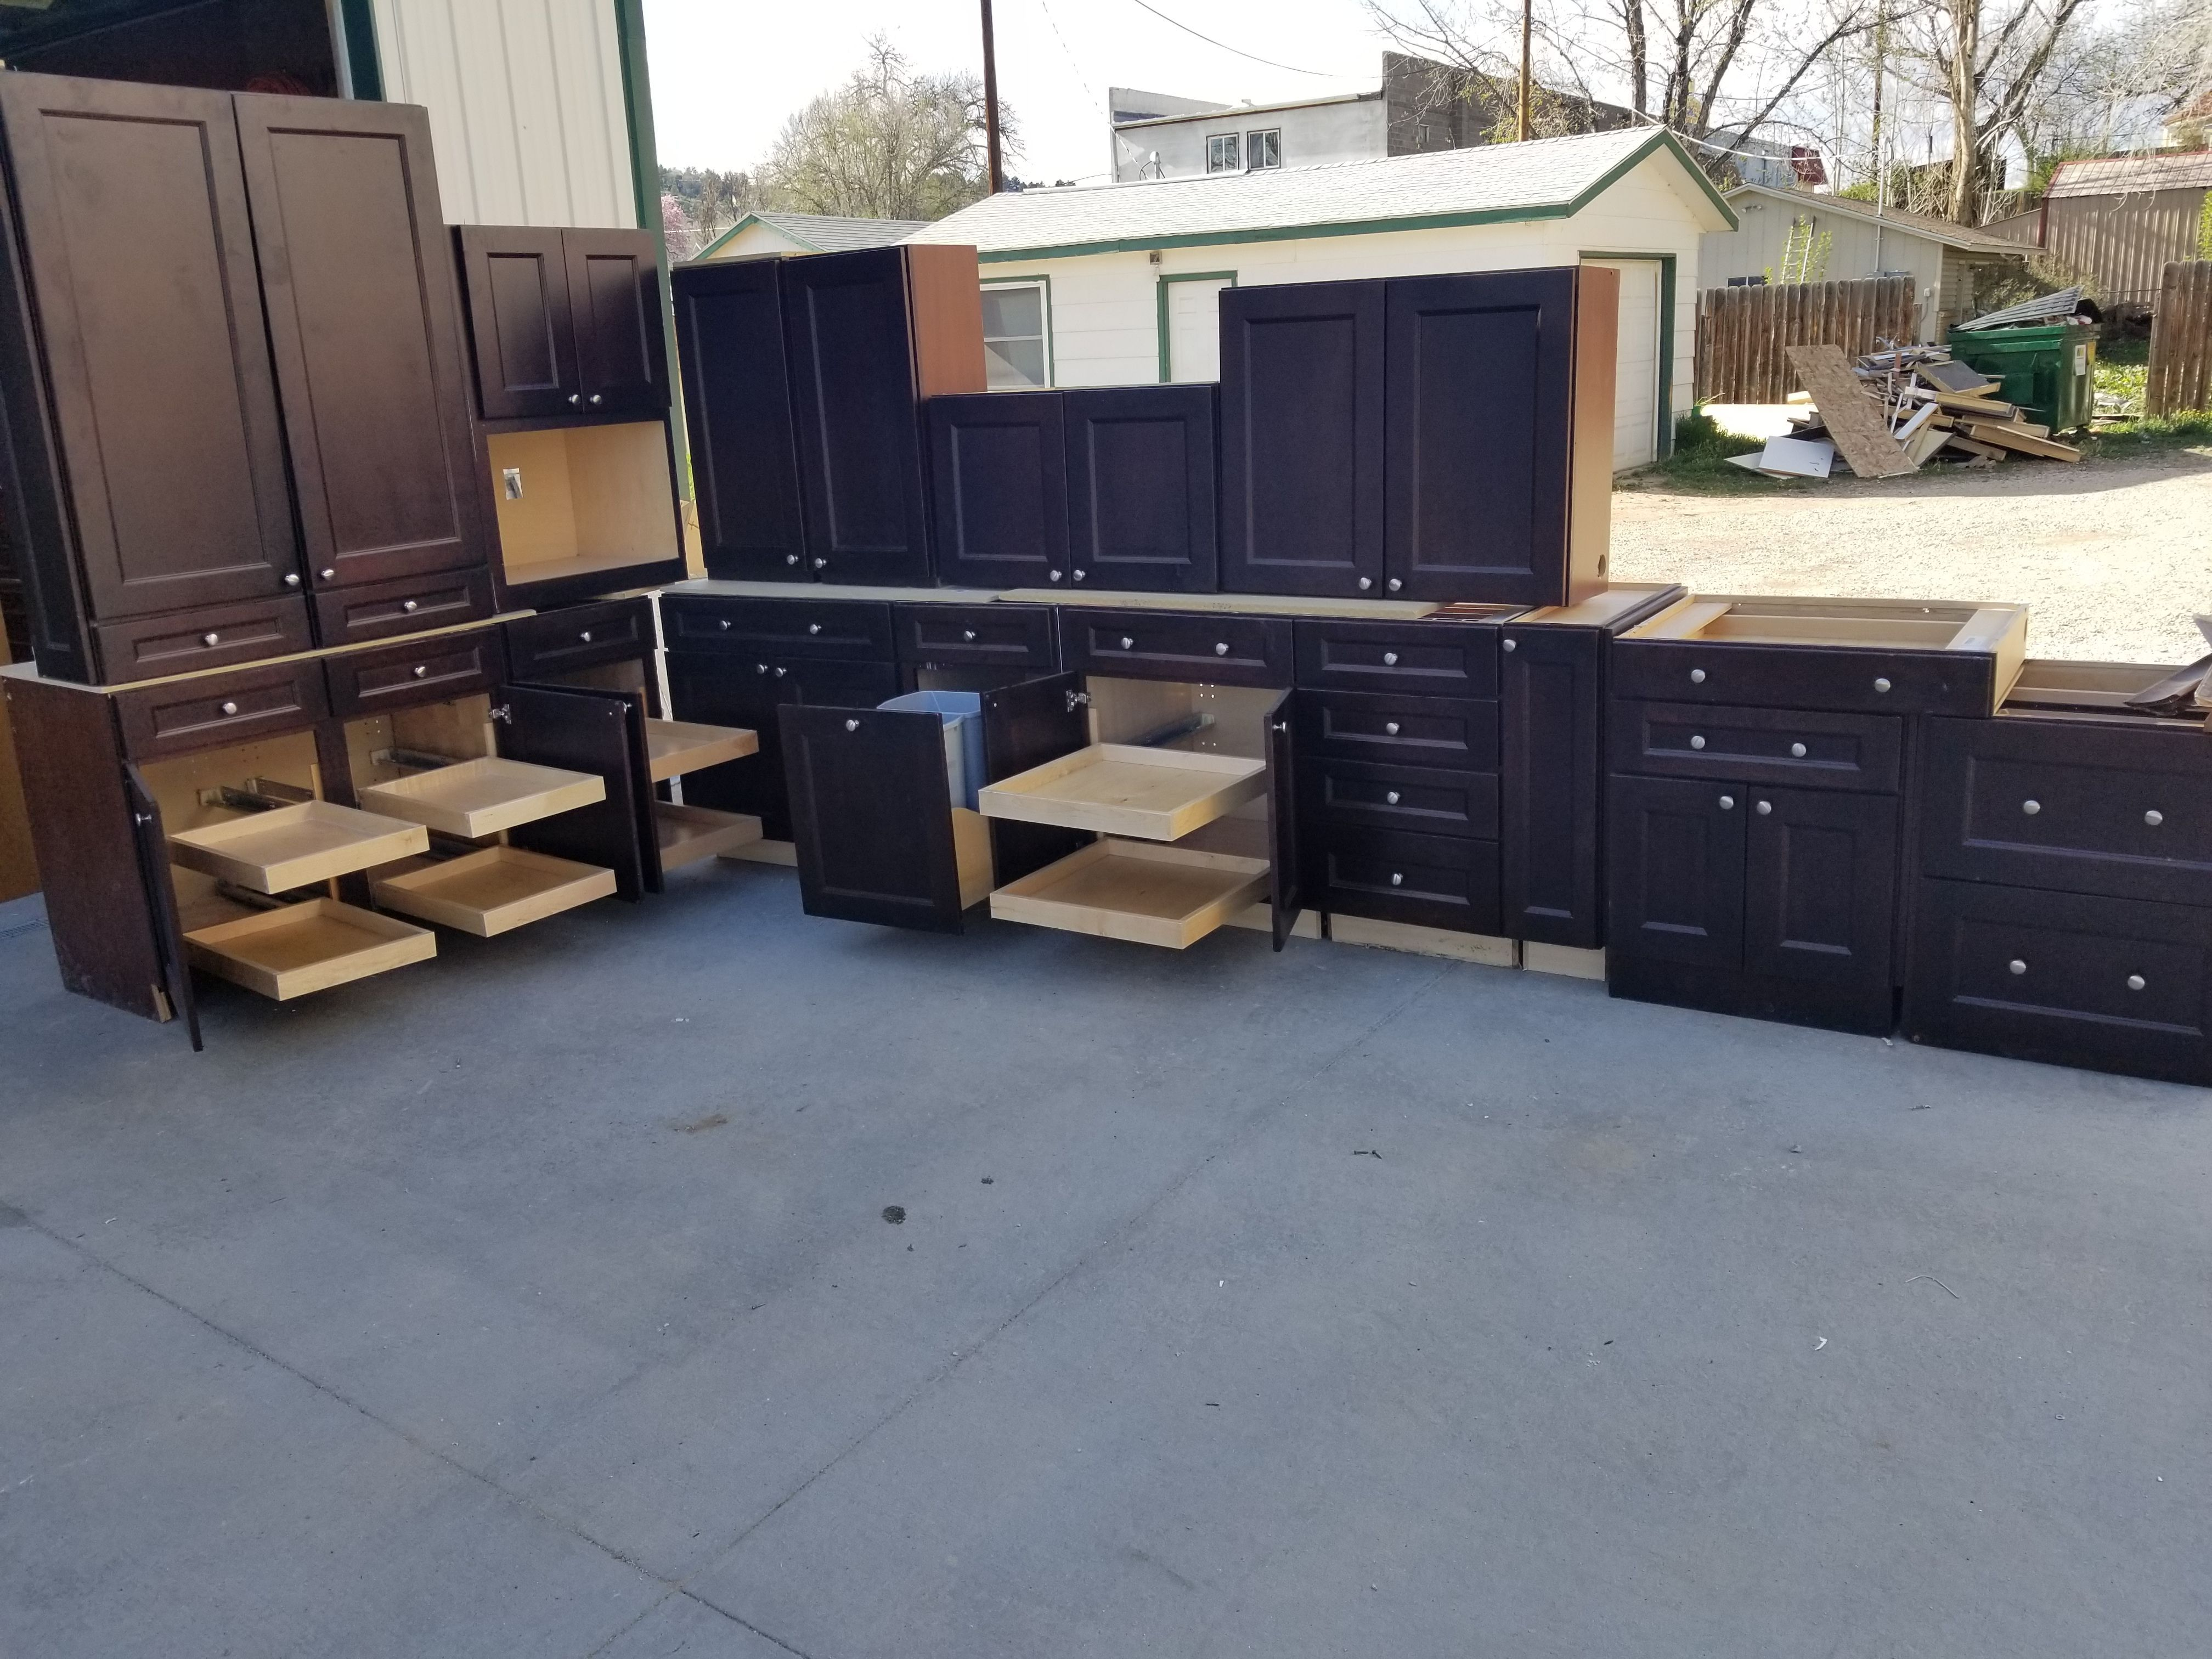 Top Rated Local® Repurposed Cabinetry | Used kitchen ...